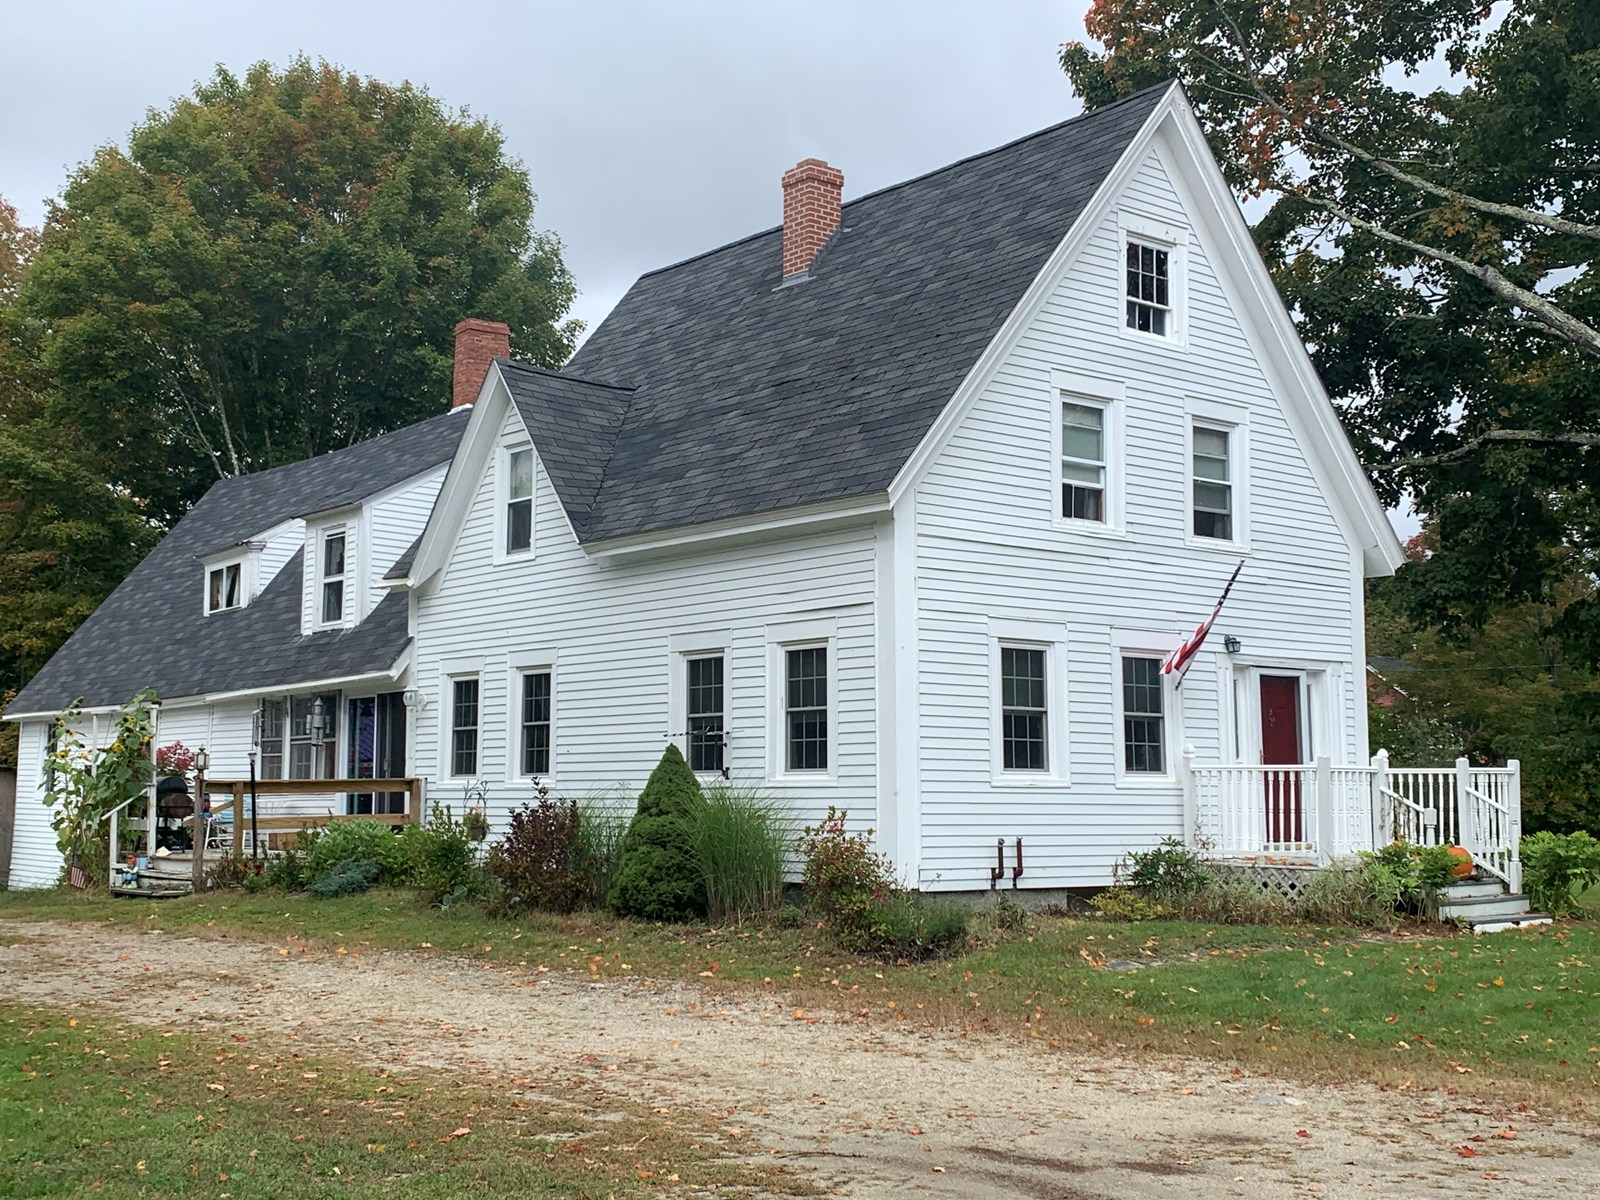 Vintage New England Farmhouse For Sale in Maine